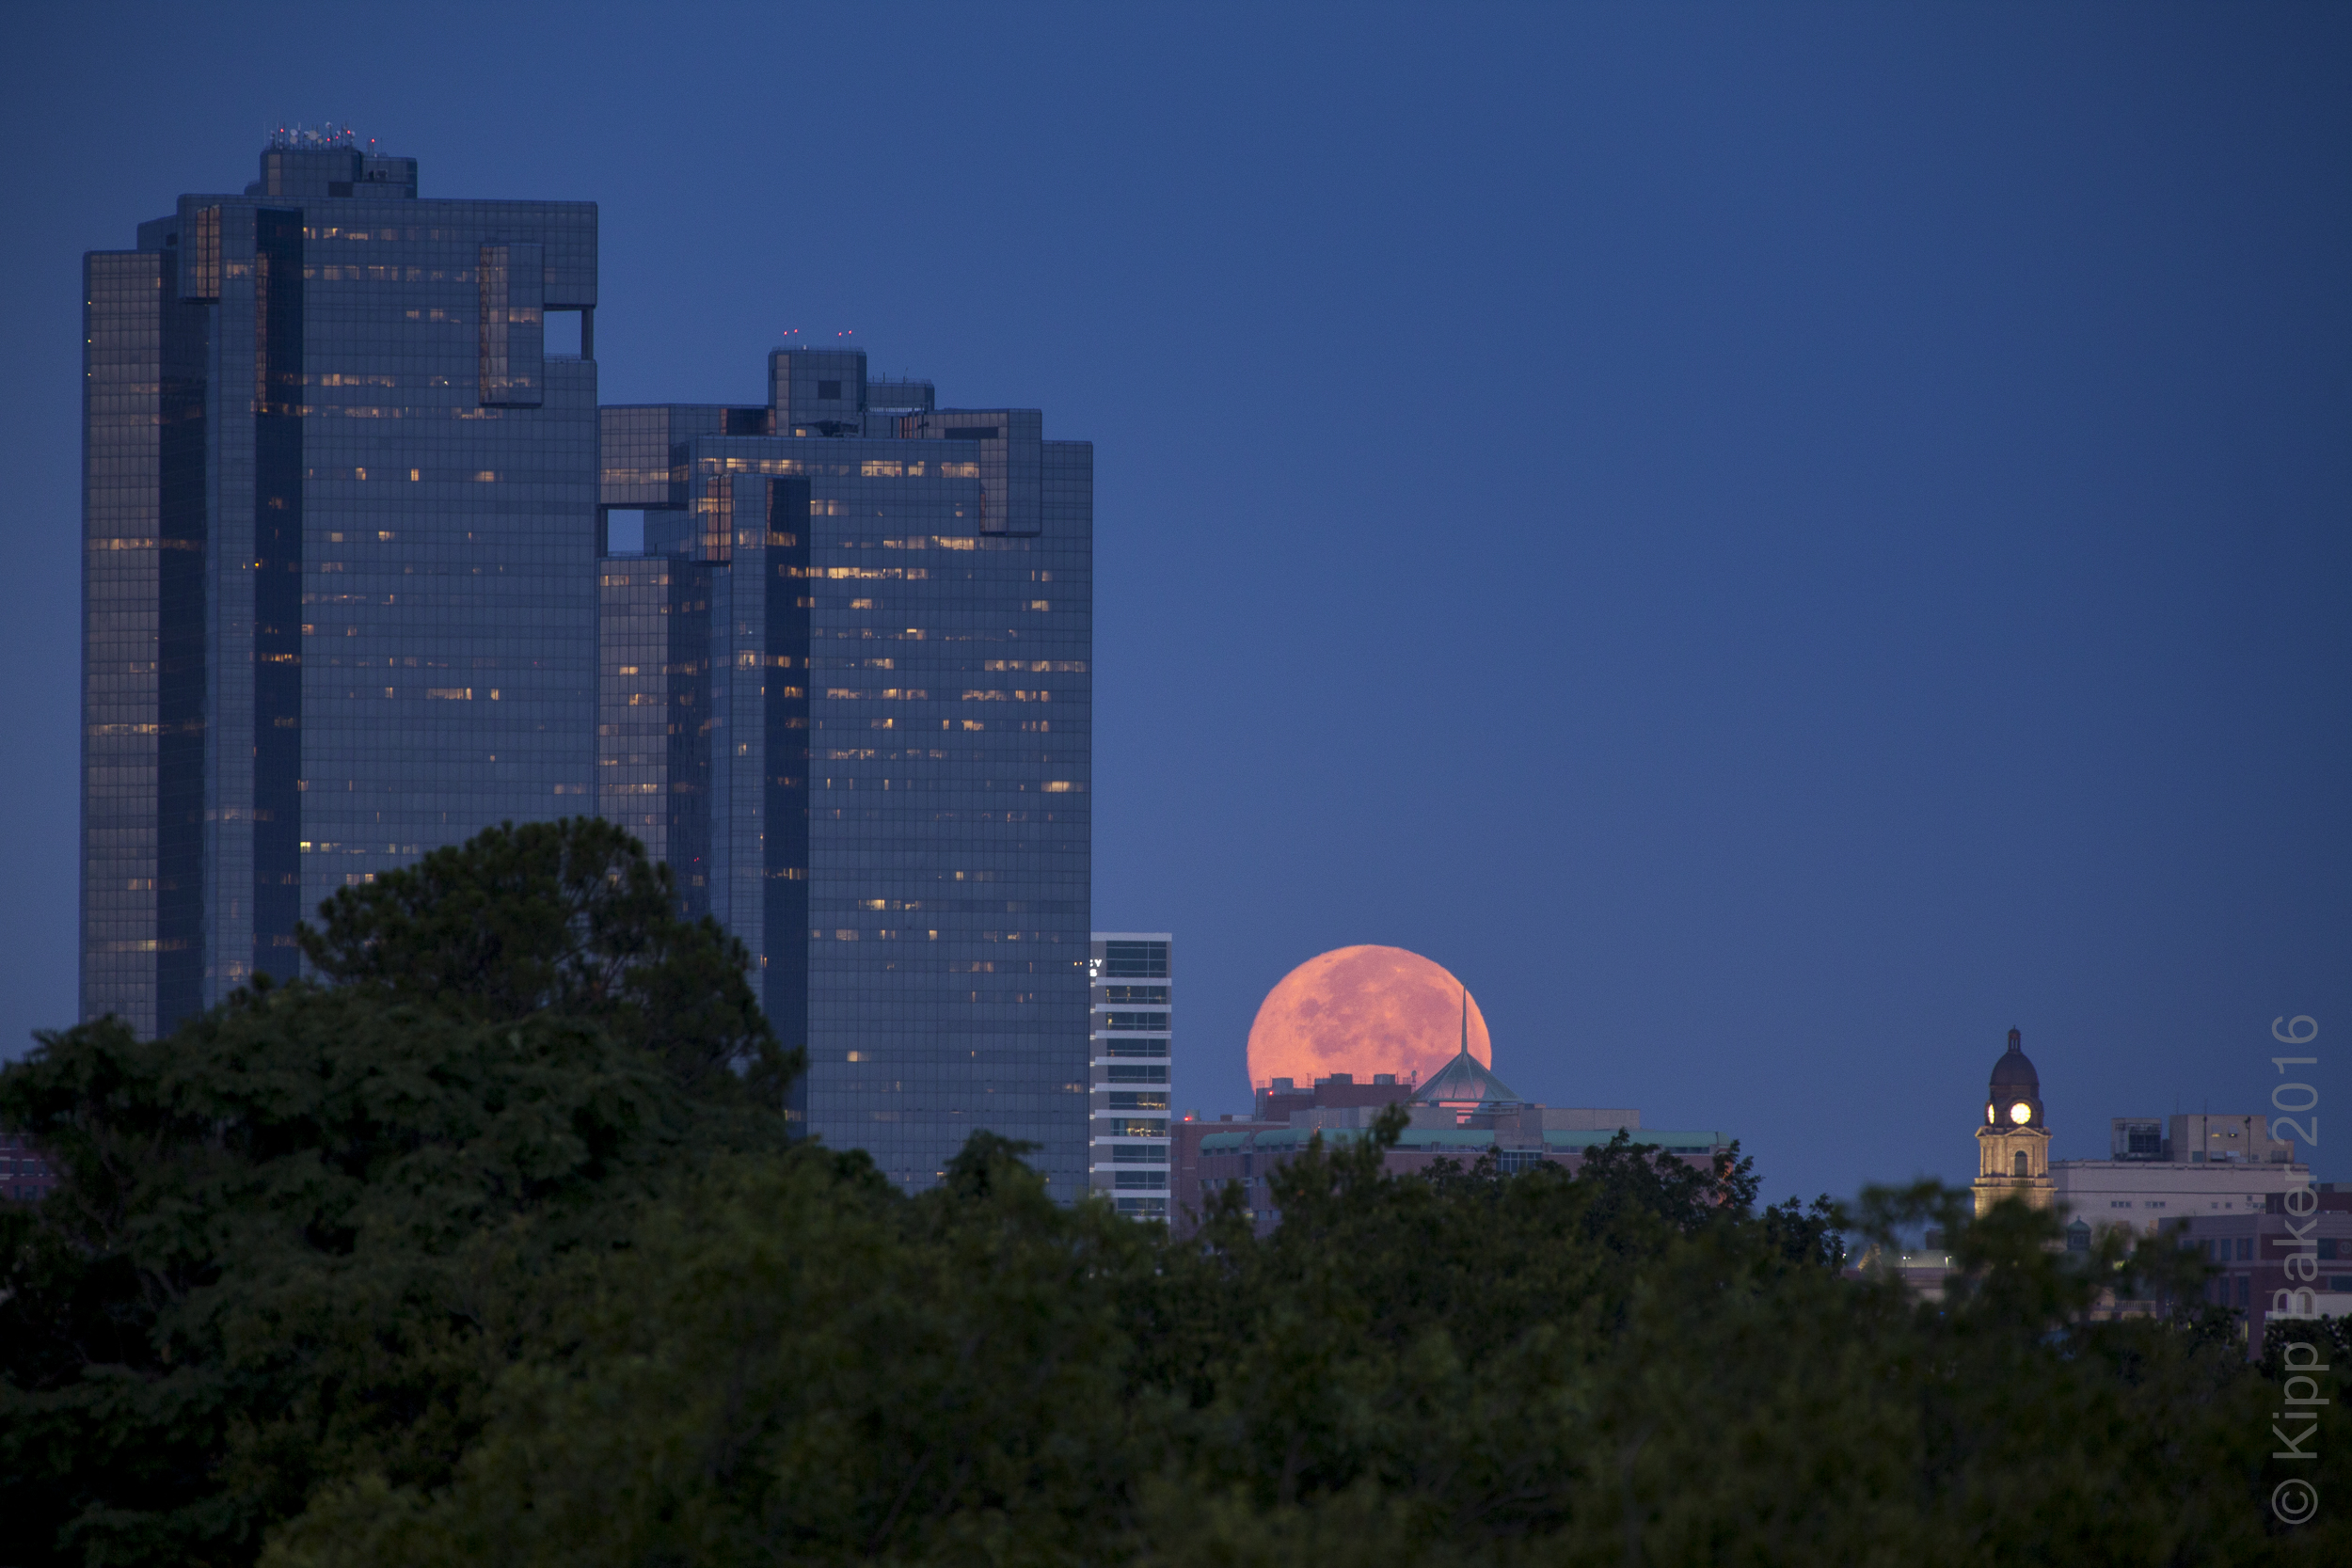 Supermoon setting over Fort Worth skyline at dawn Copyright © Kipp Baker, All rights reserved.